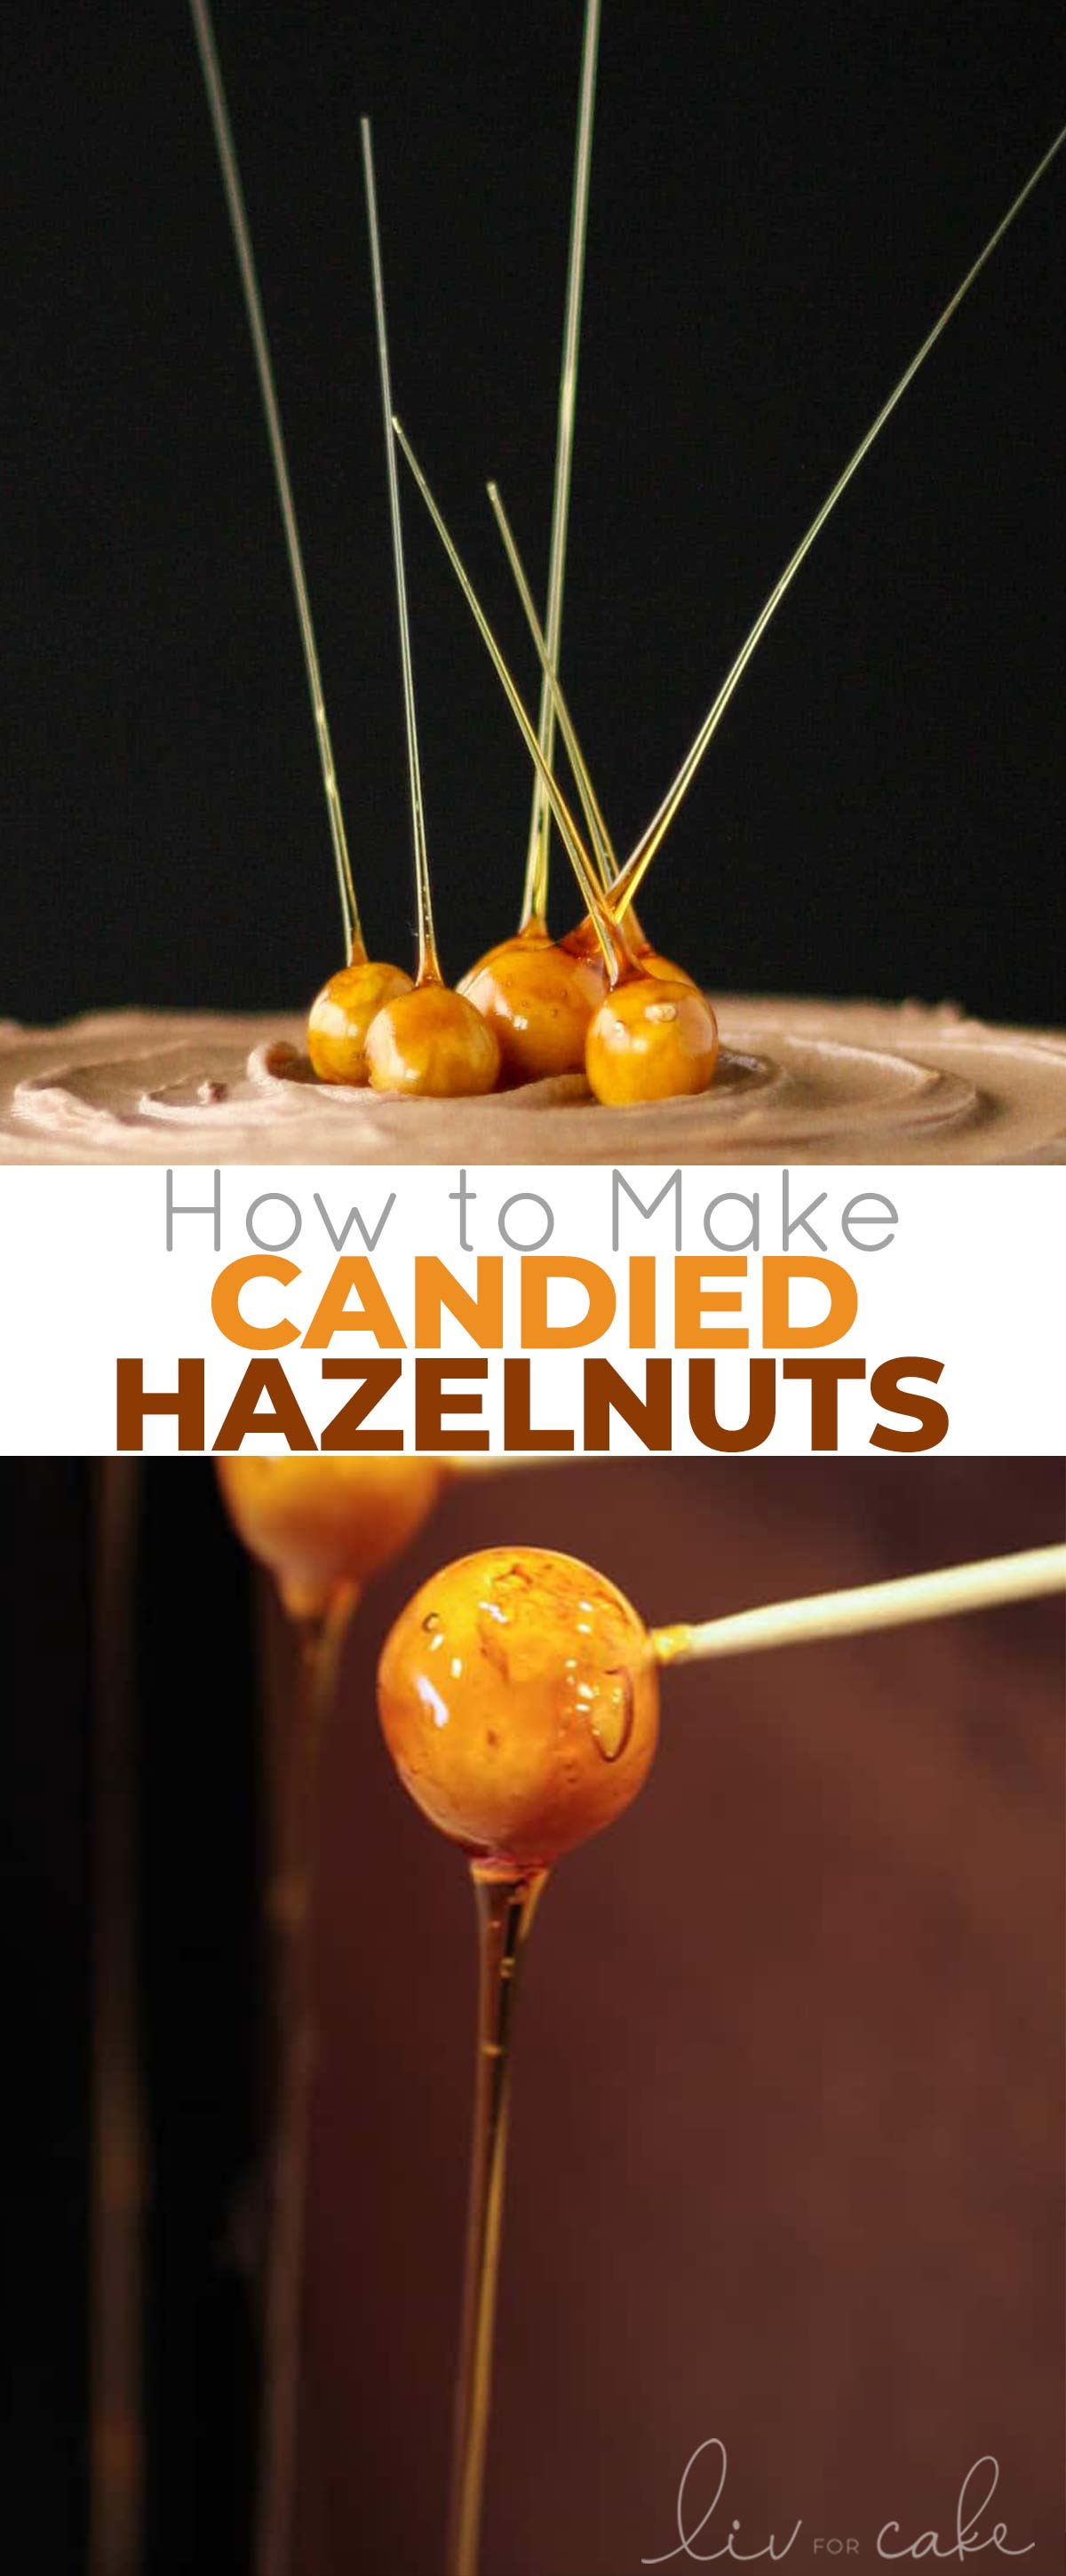 Candied hazelnuts collage.